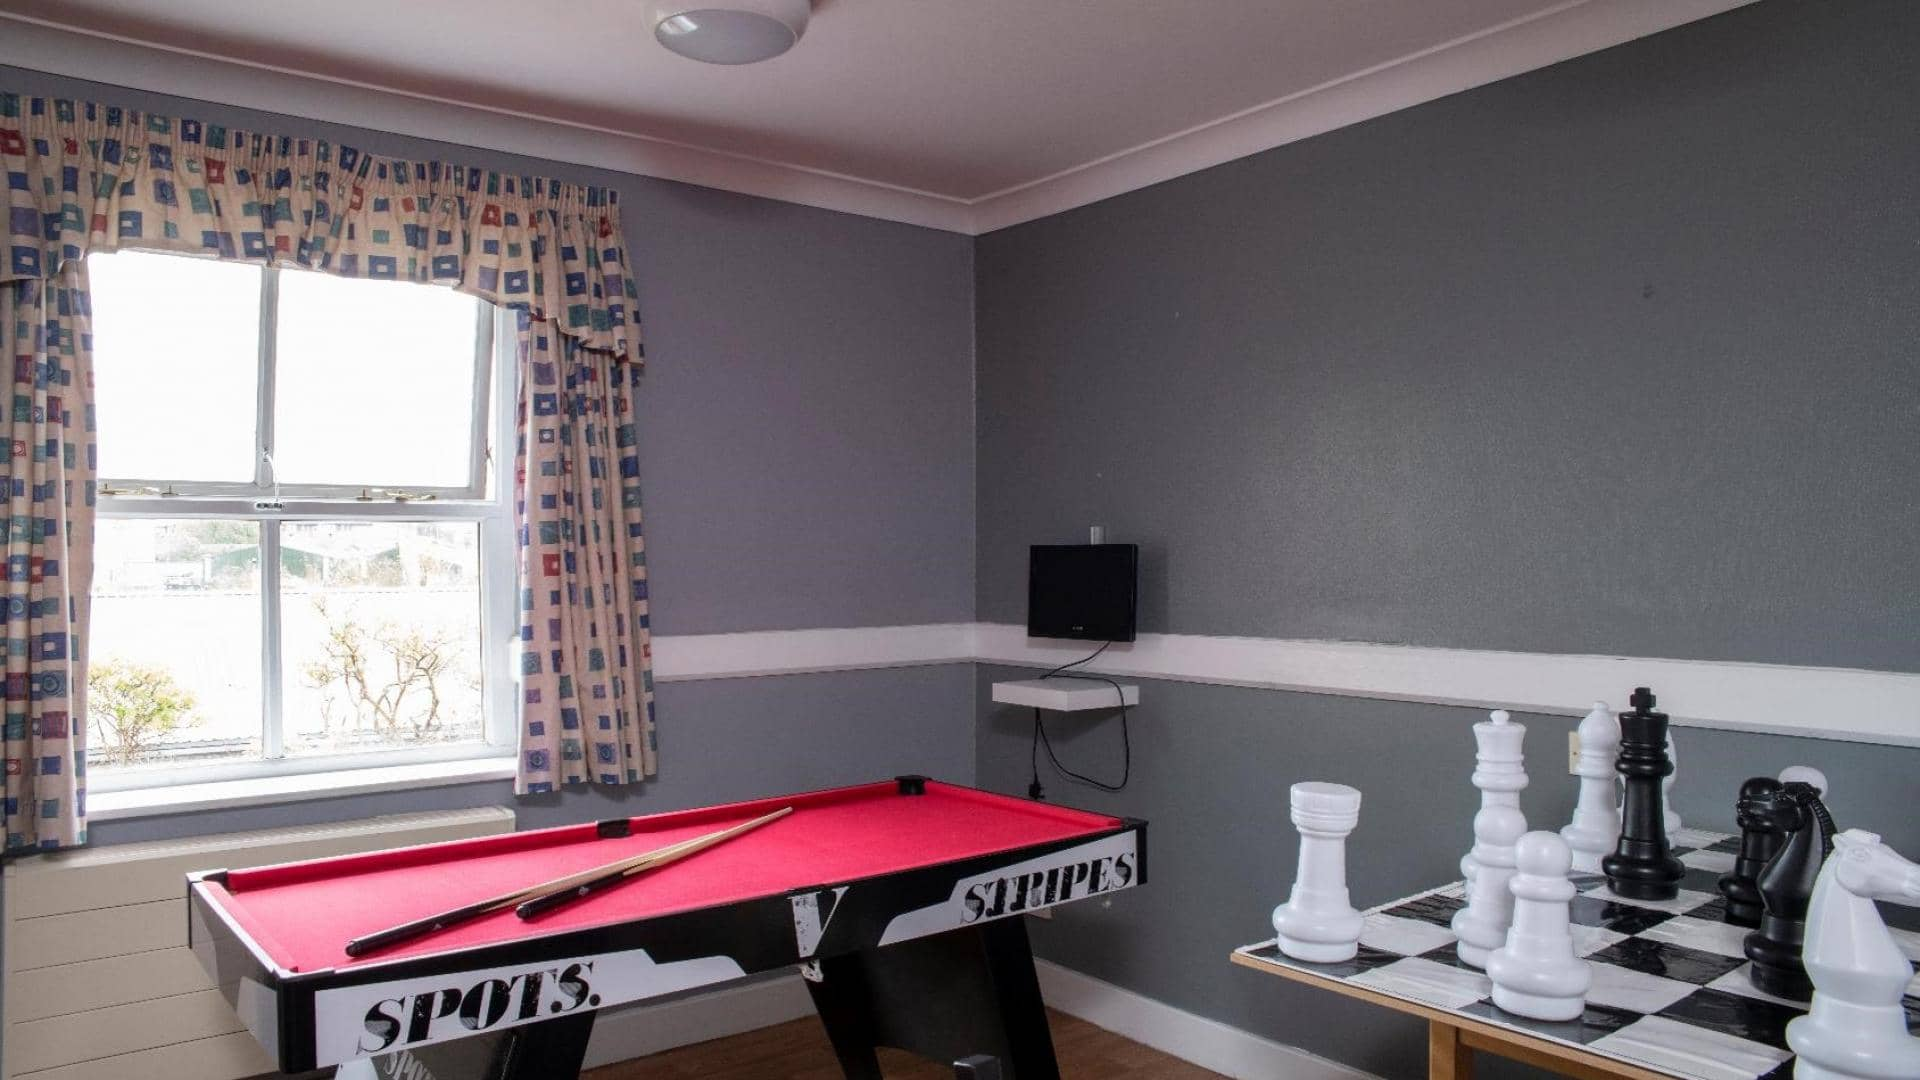 Paisley Lodge Care Home, Games Room